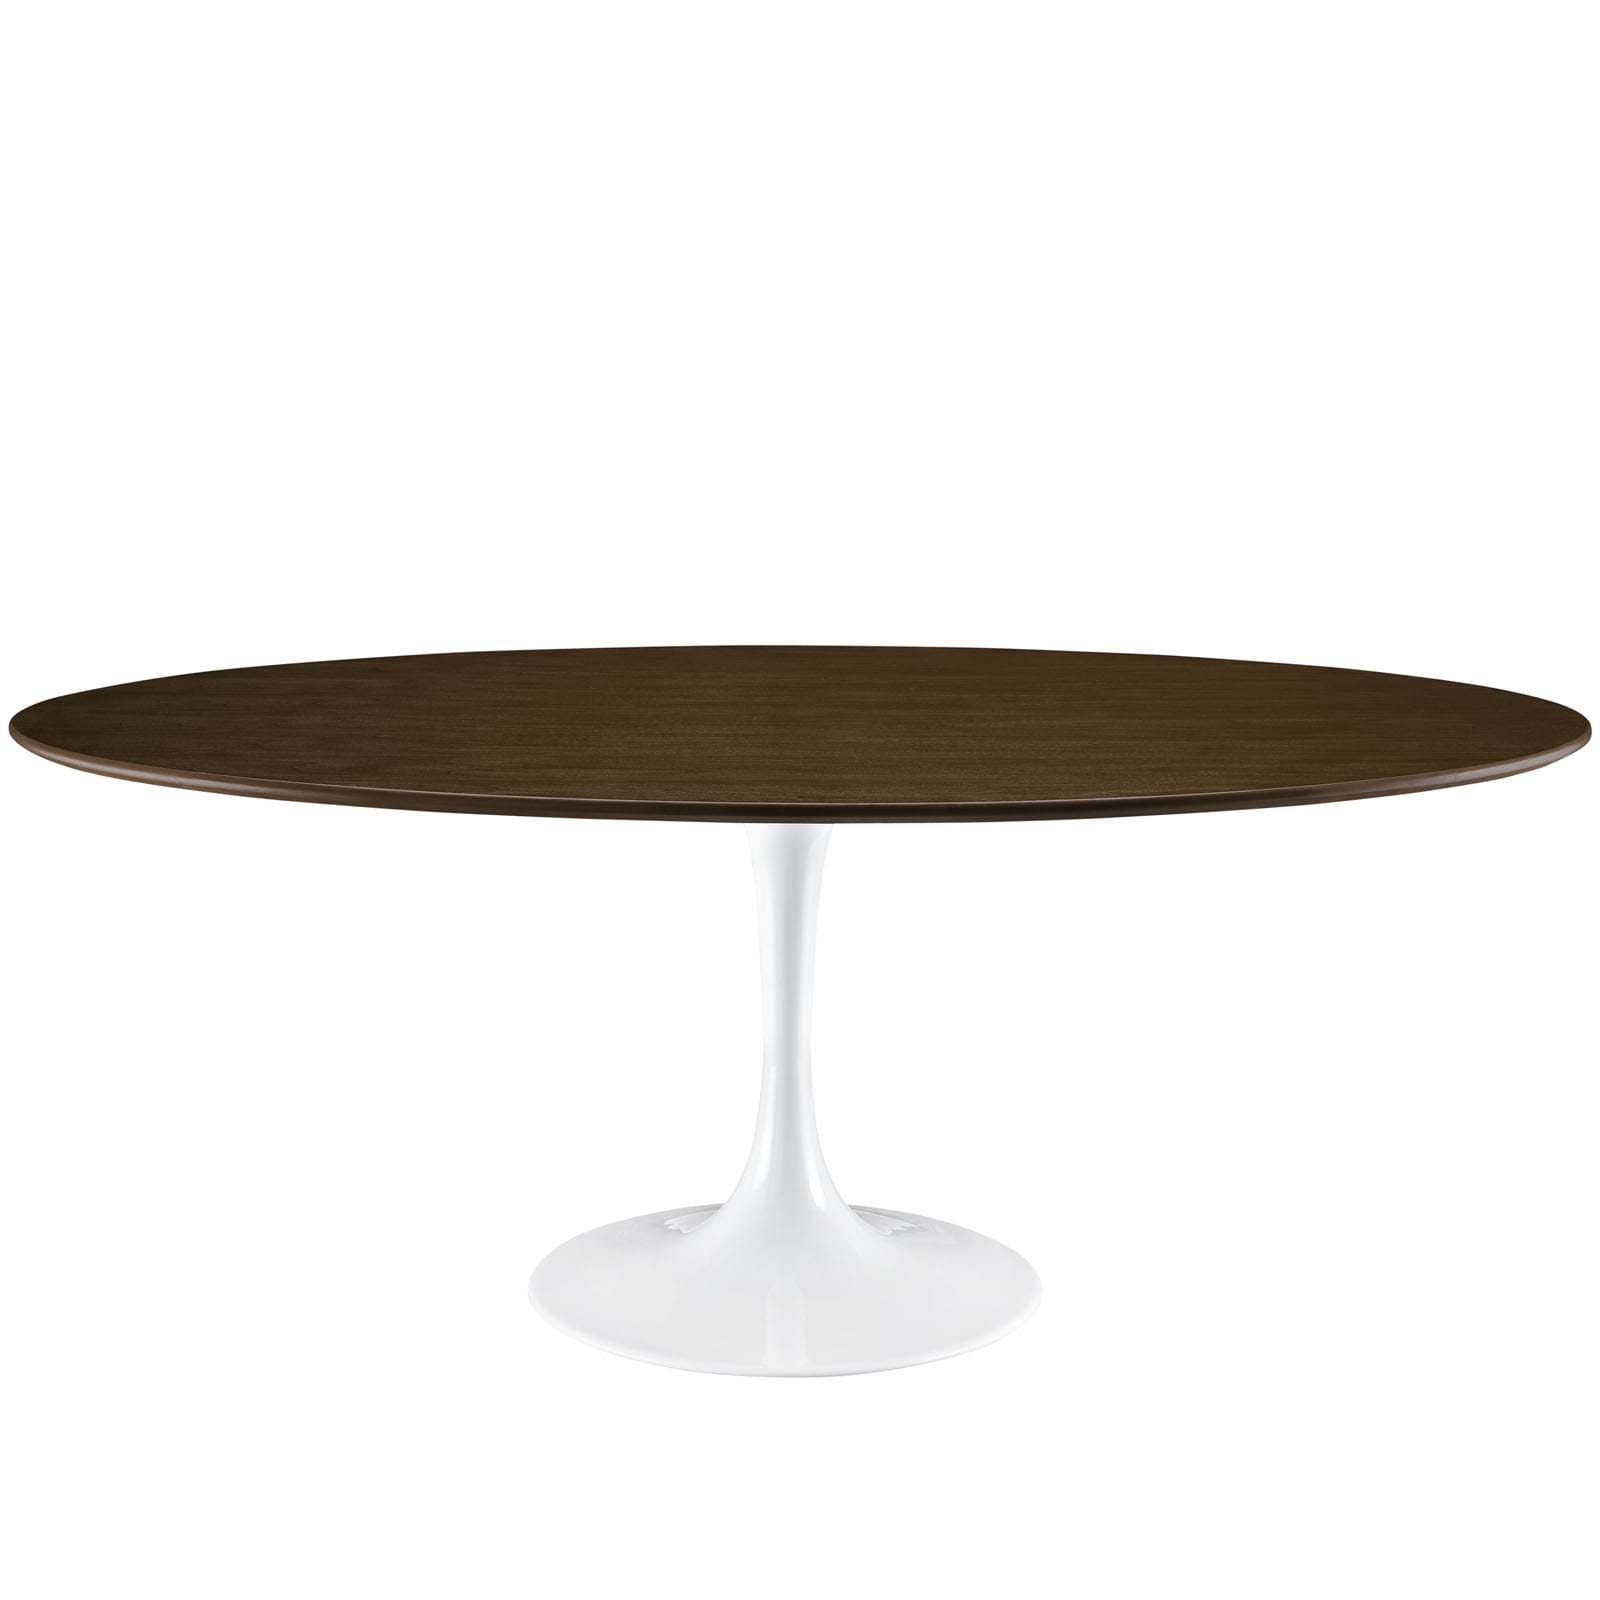 "Lippa 78"" Wood Dining Table"